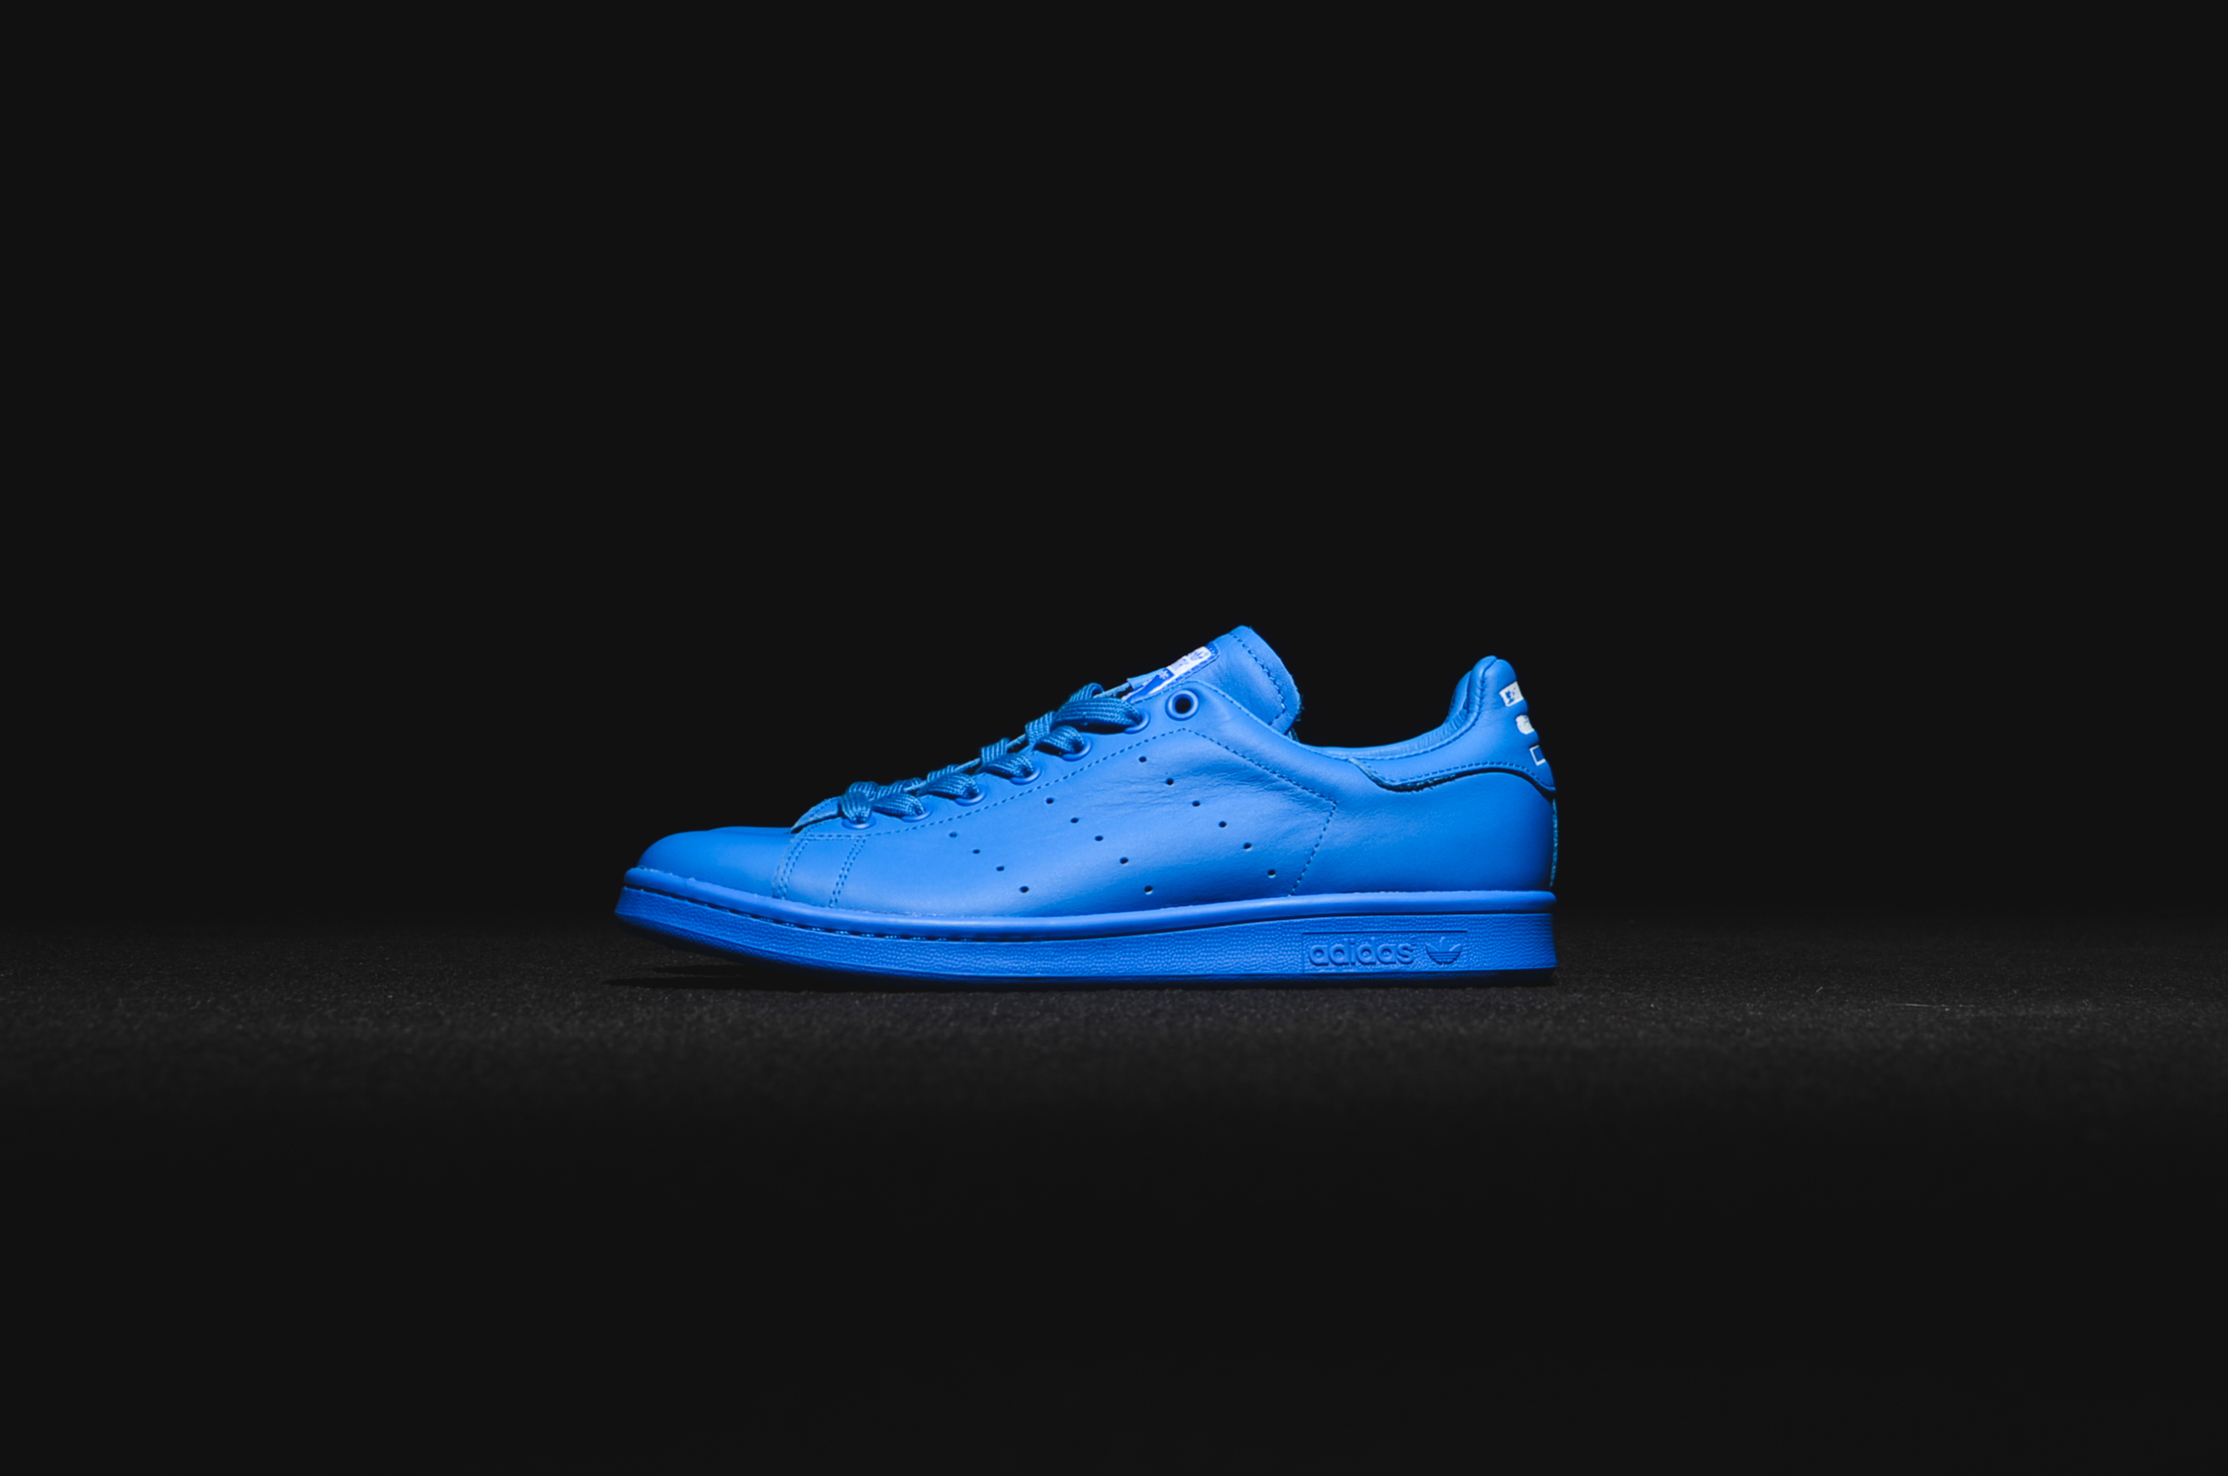 purchase cheap 233fe 64597 ... Stan Smith in full red, black and blue colour ways. The shoes sport a  leather upper as well as outsole, a beefed up tongue tag, three stripes on  the ...